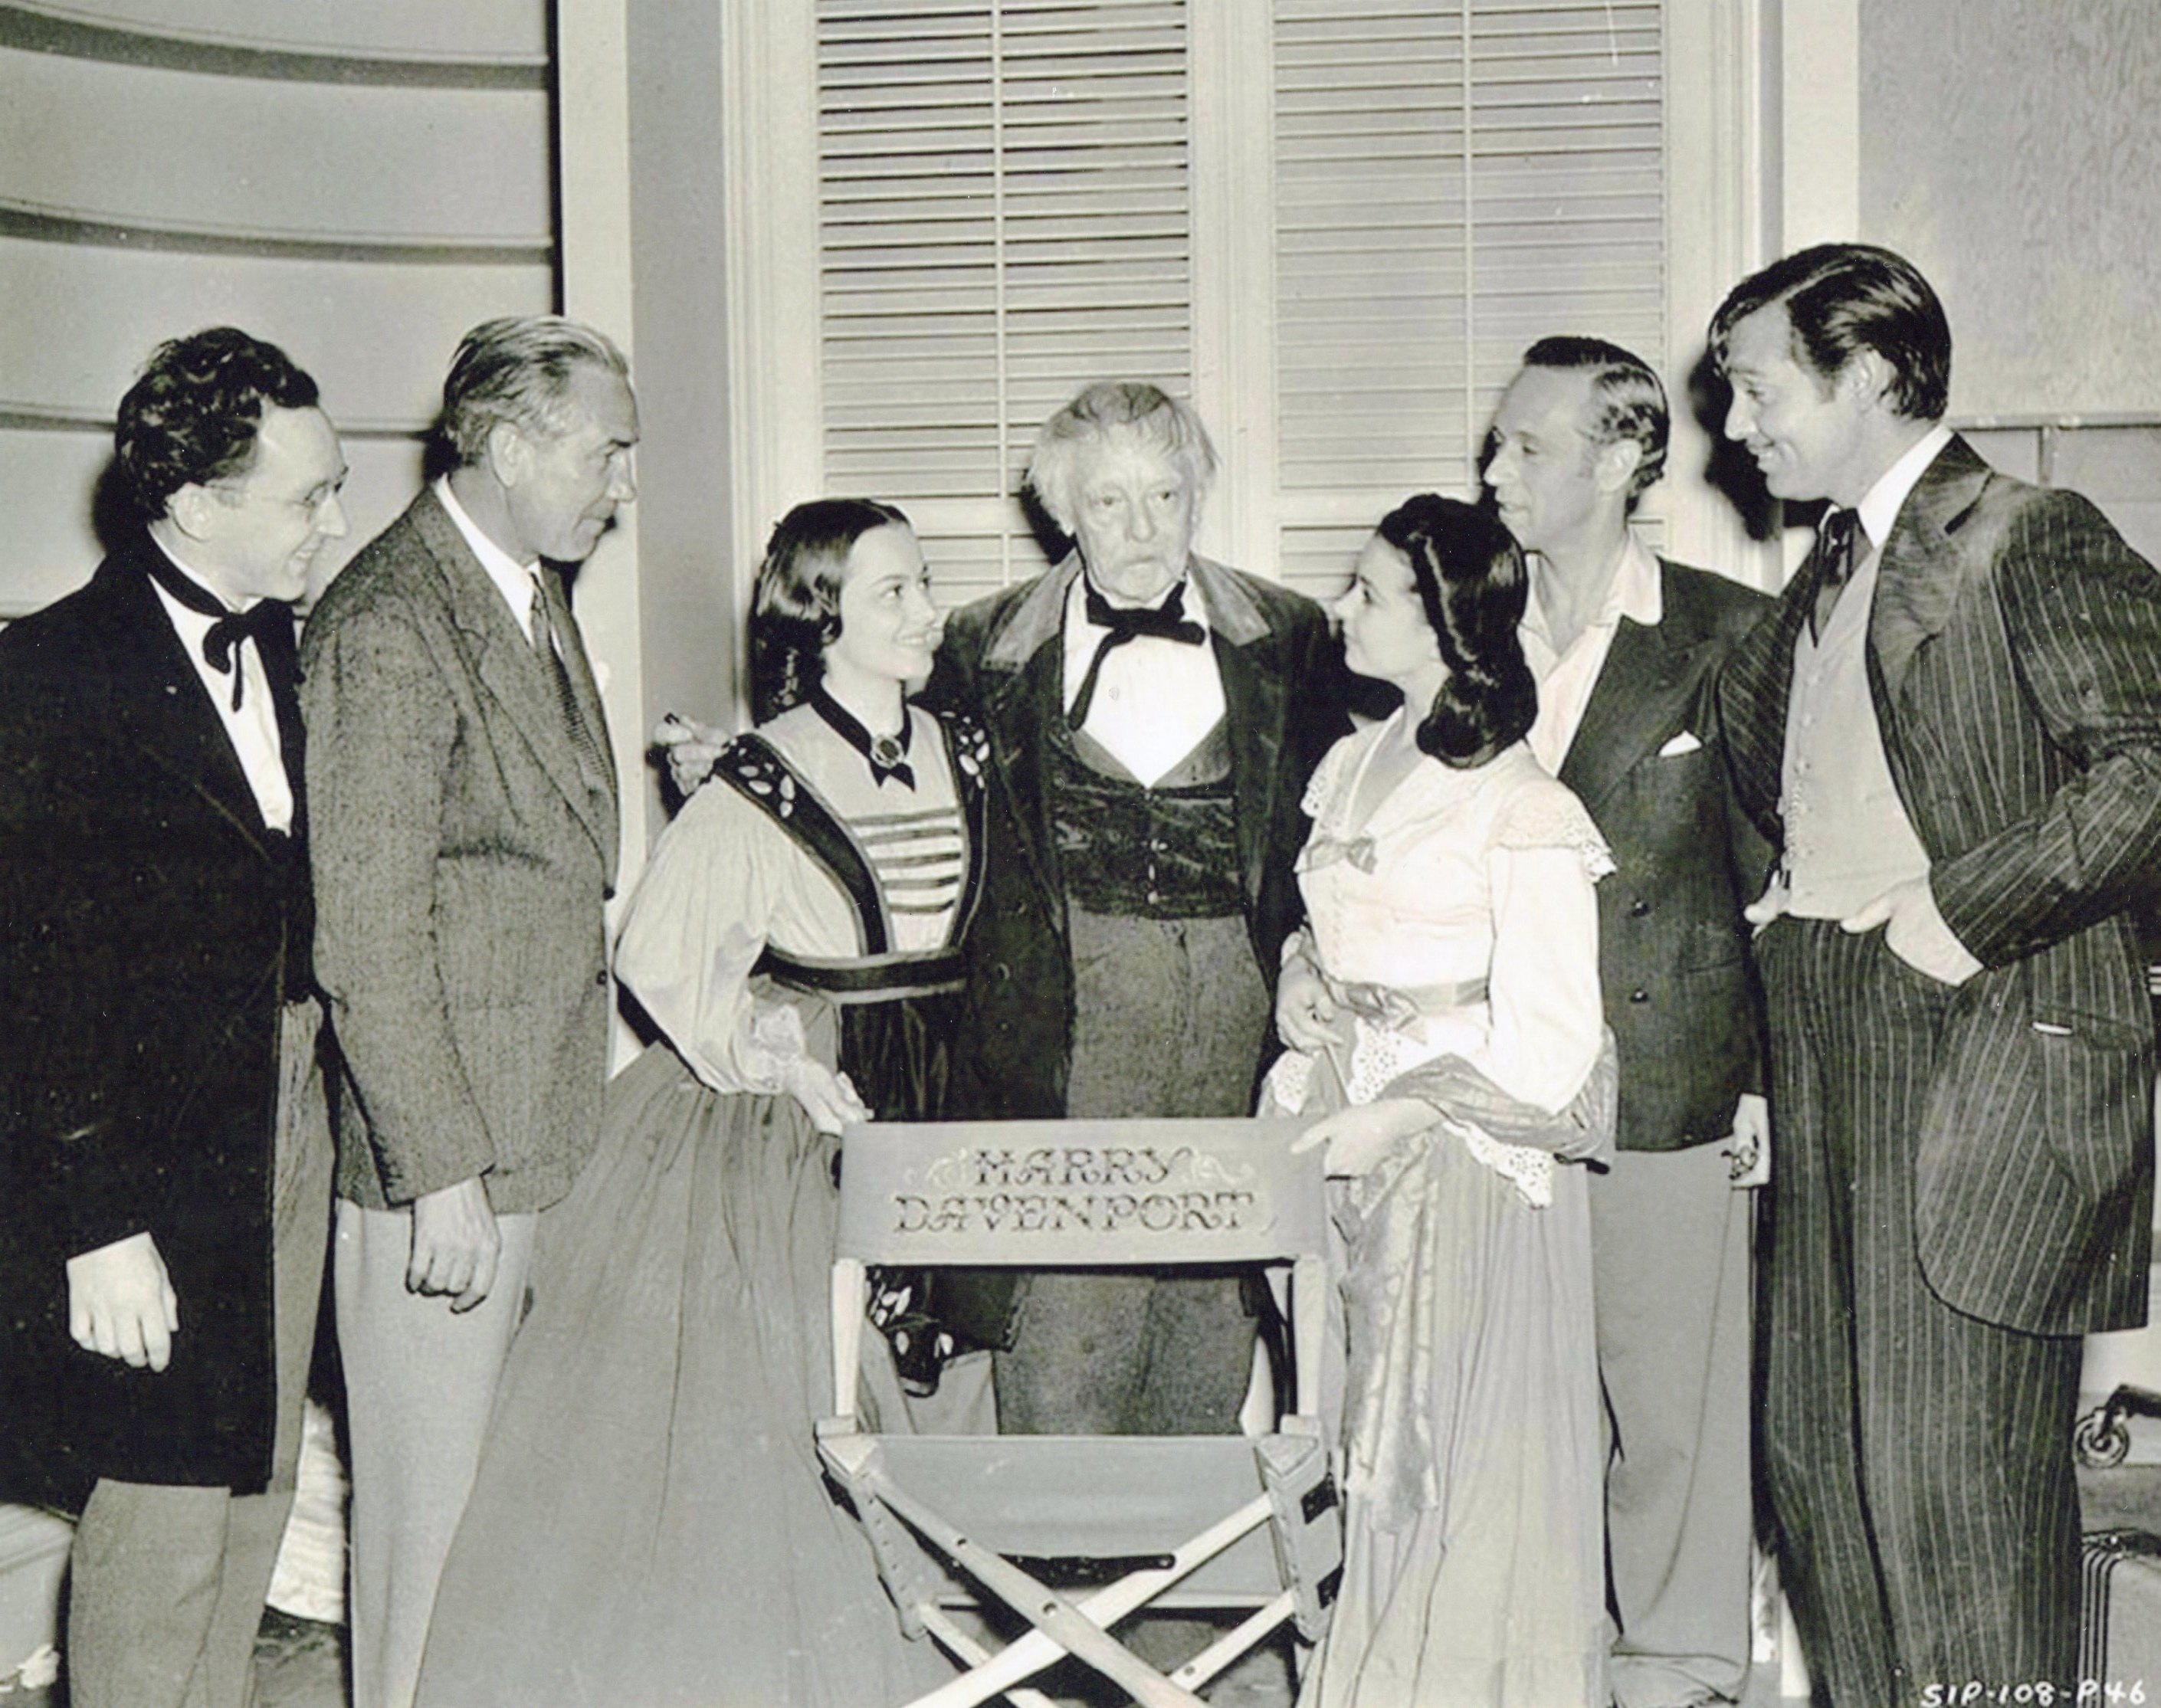 Lot 1055 - A Harry Davenport vest from Gone With the Wind